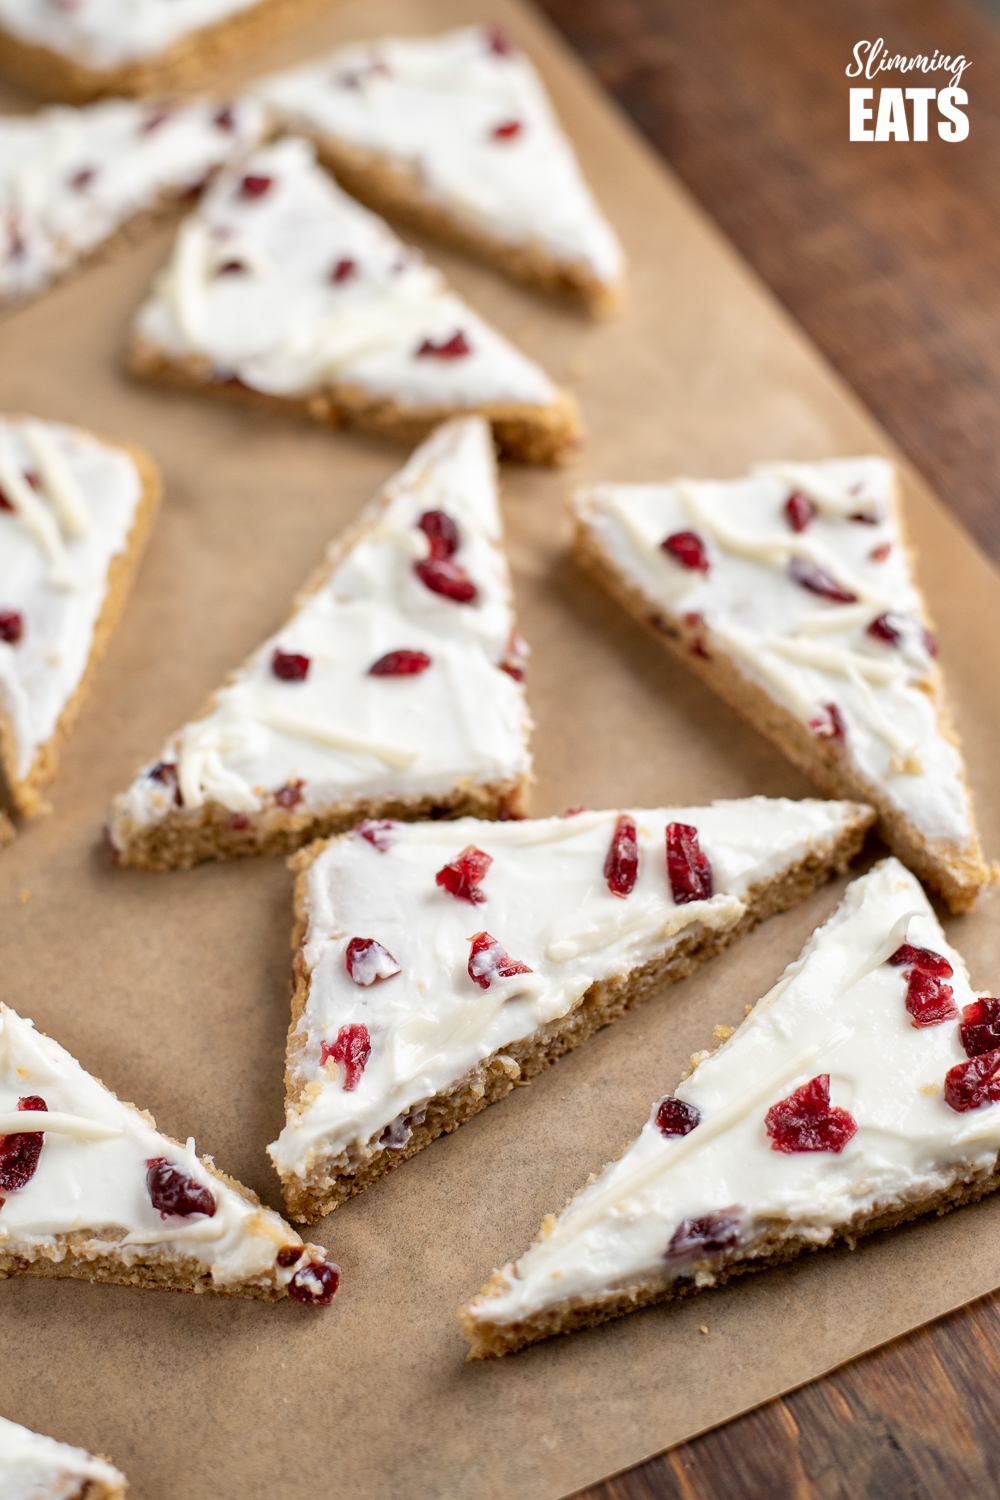 cranberry bliss baked oat bar slices on parchment paper